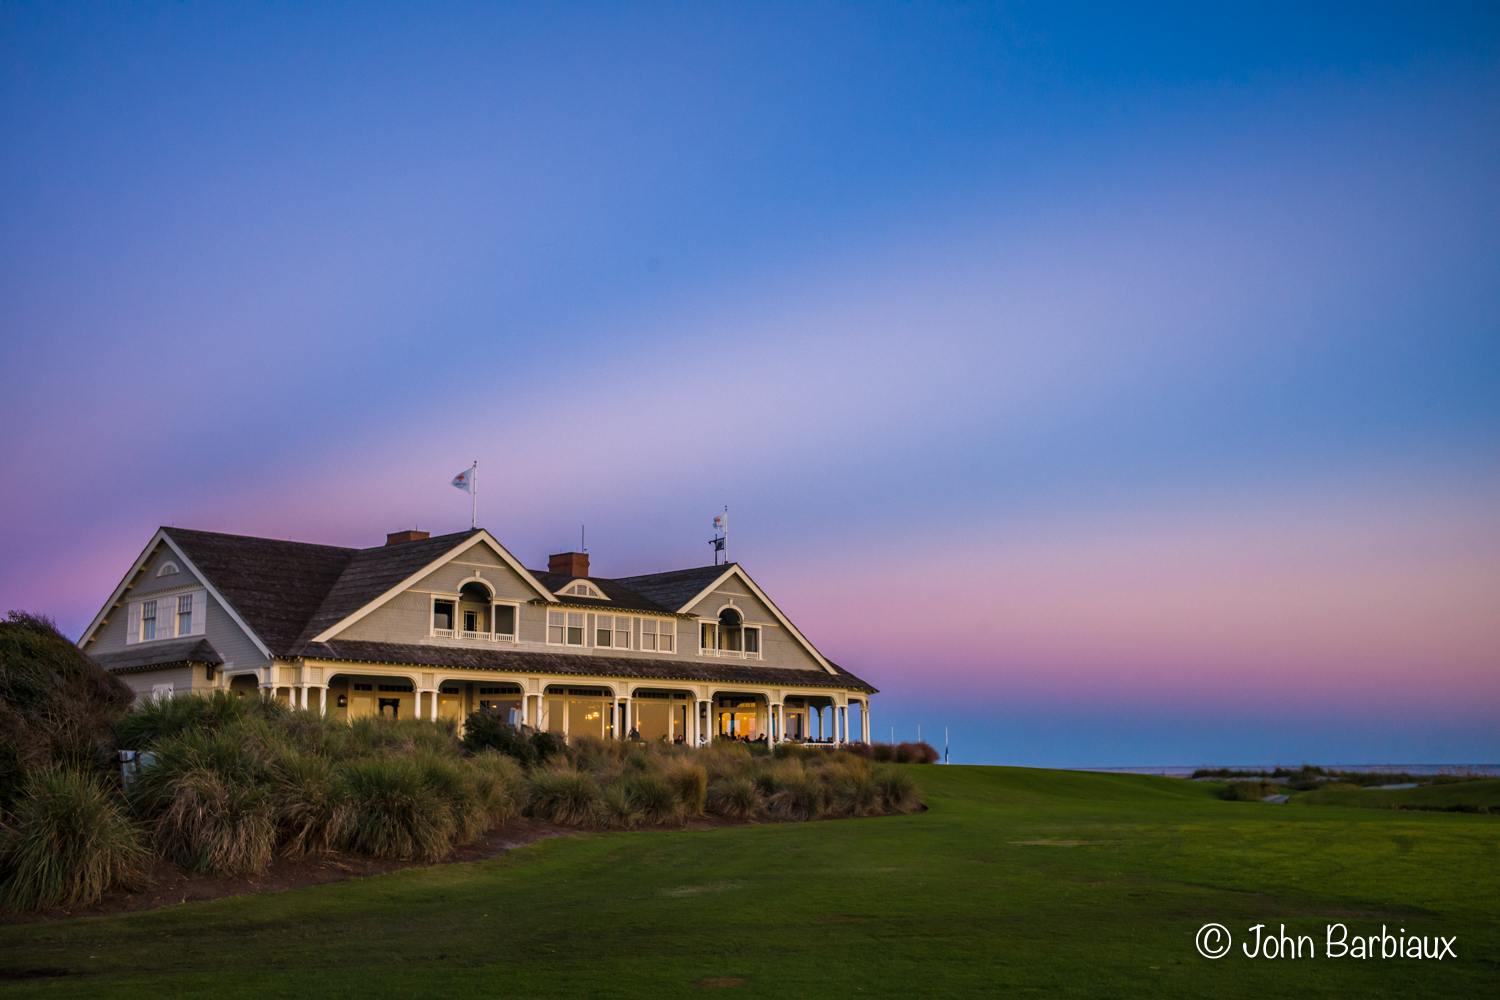 Ocean Course, Kiawah Island, Kiawah, Leica, sunset, landscape, fine art, ocean, travel, vacation, photography